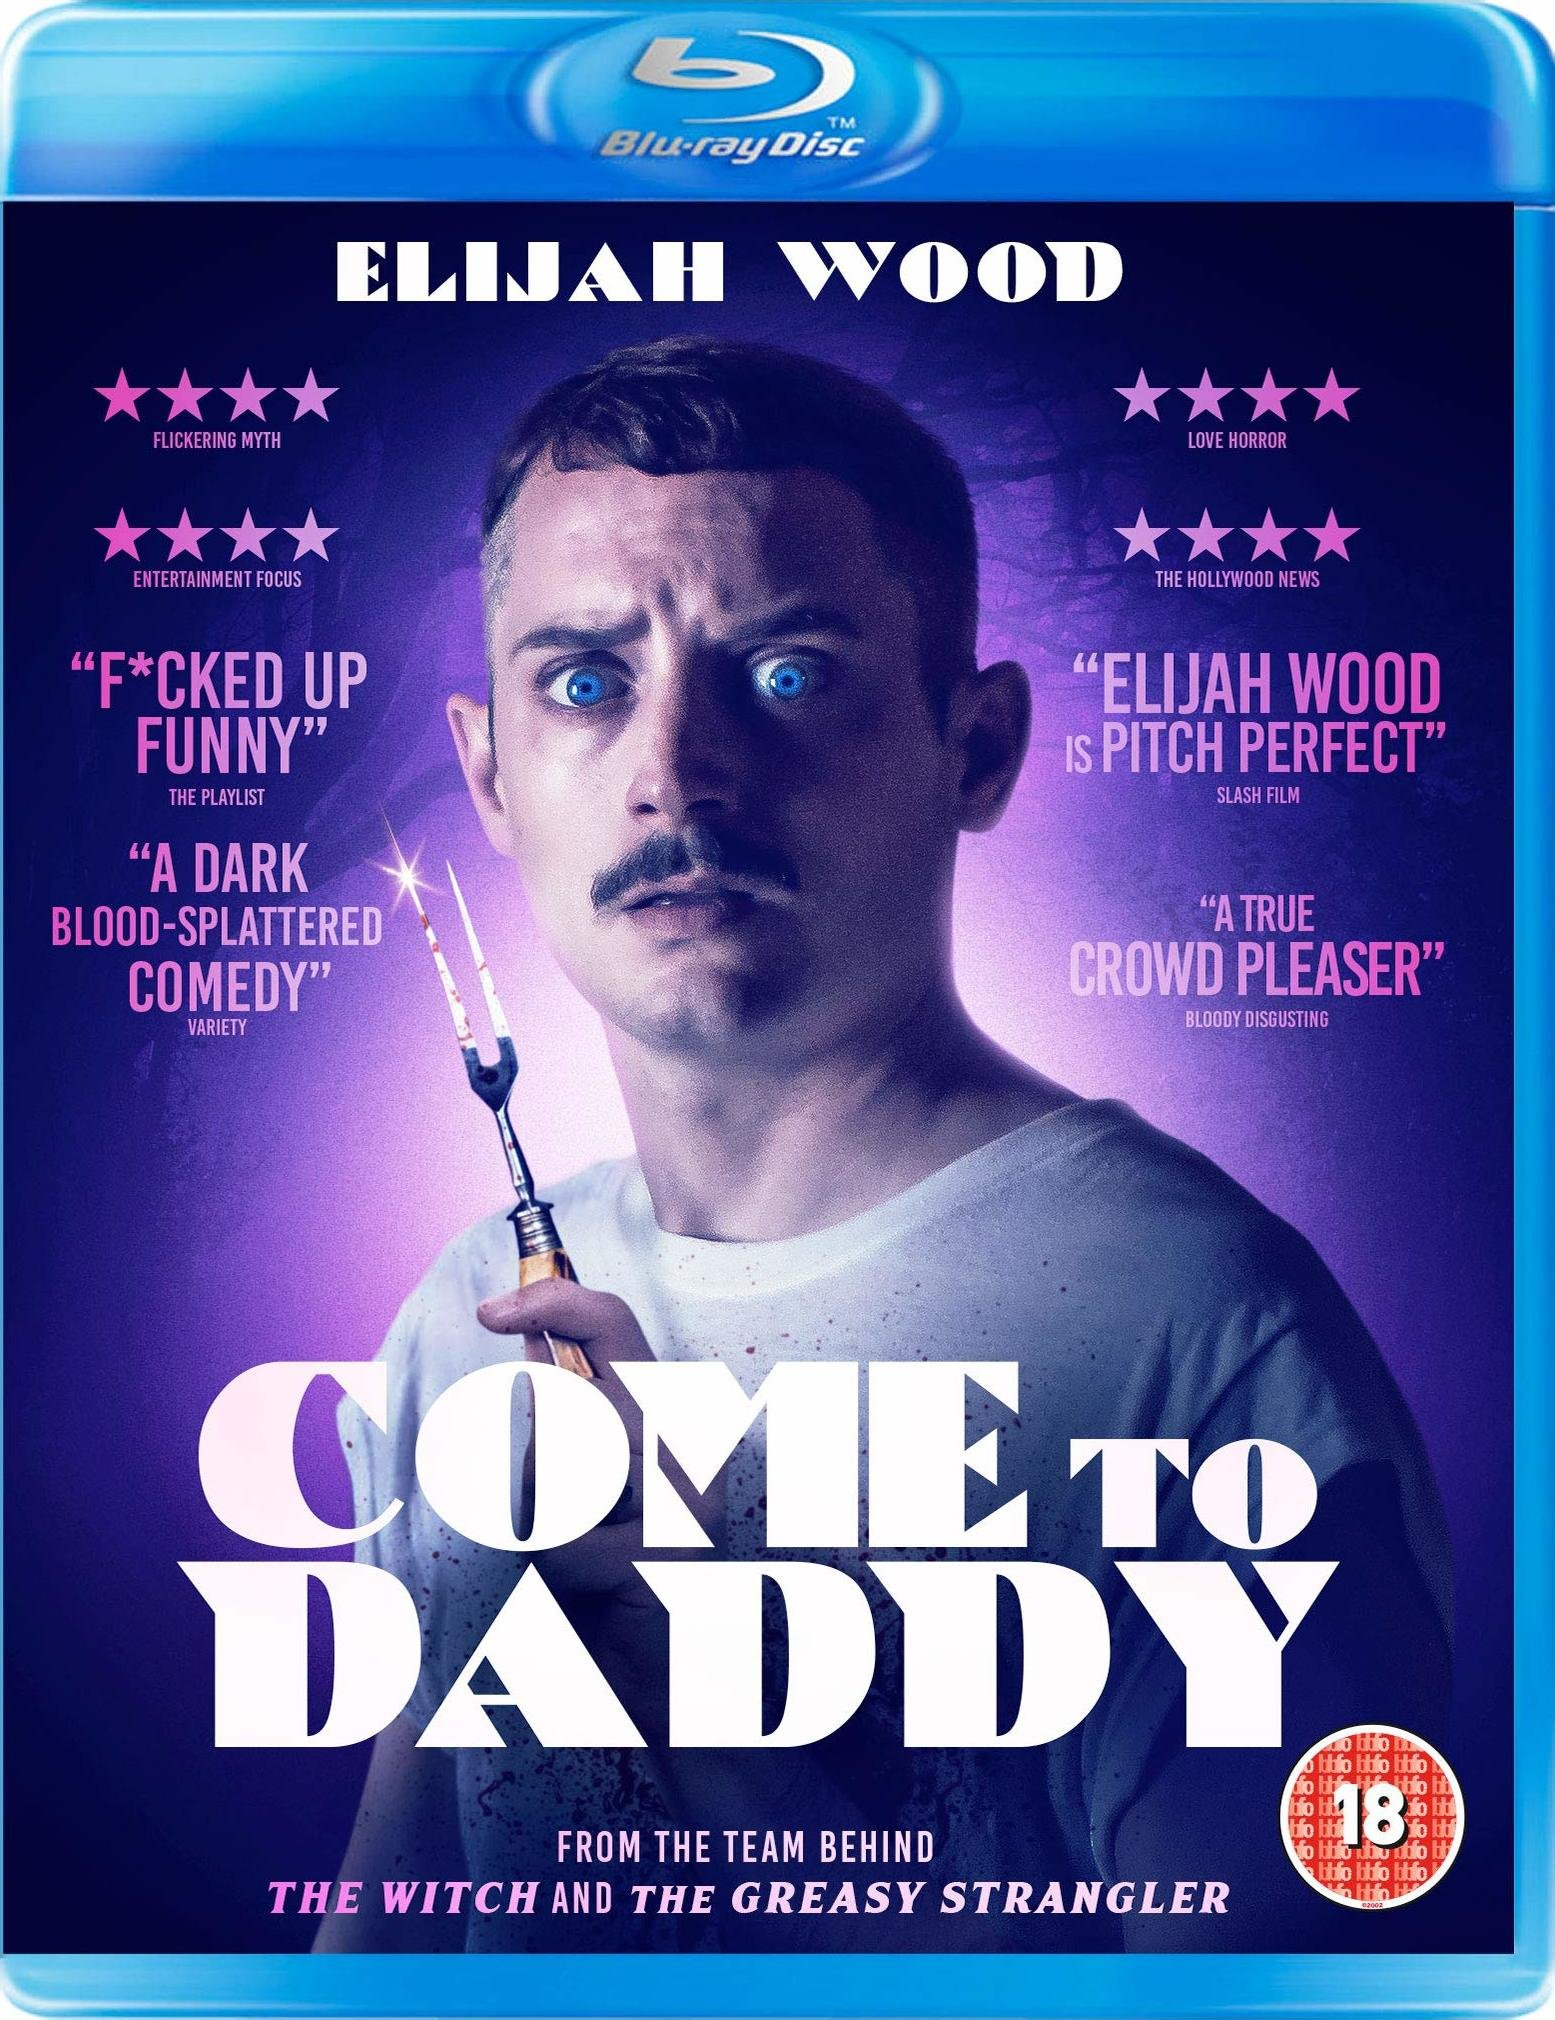 Come to Daddy (2019) poster image